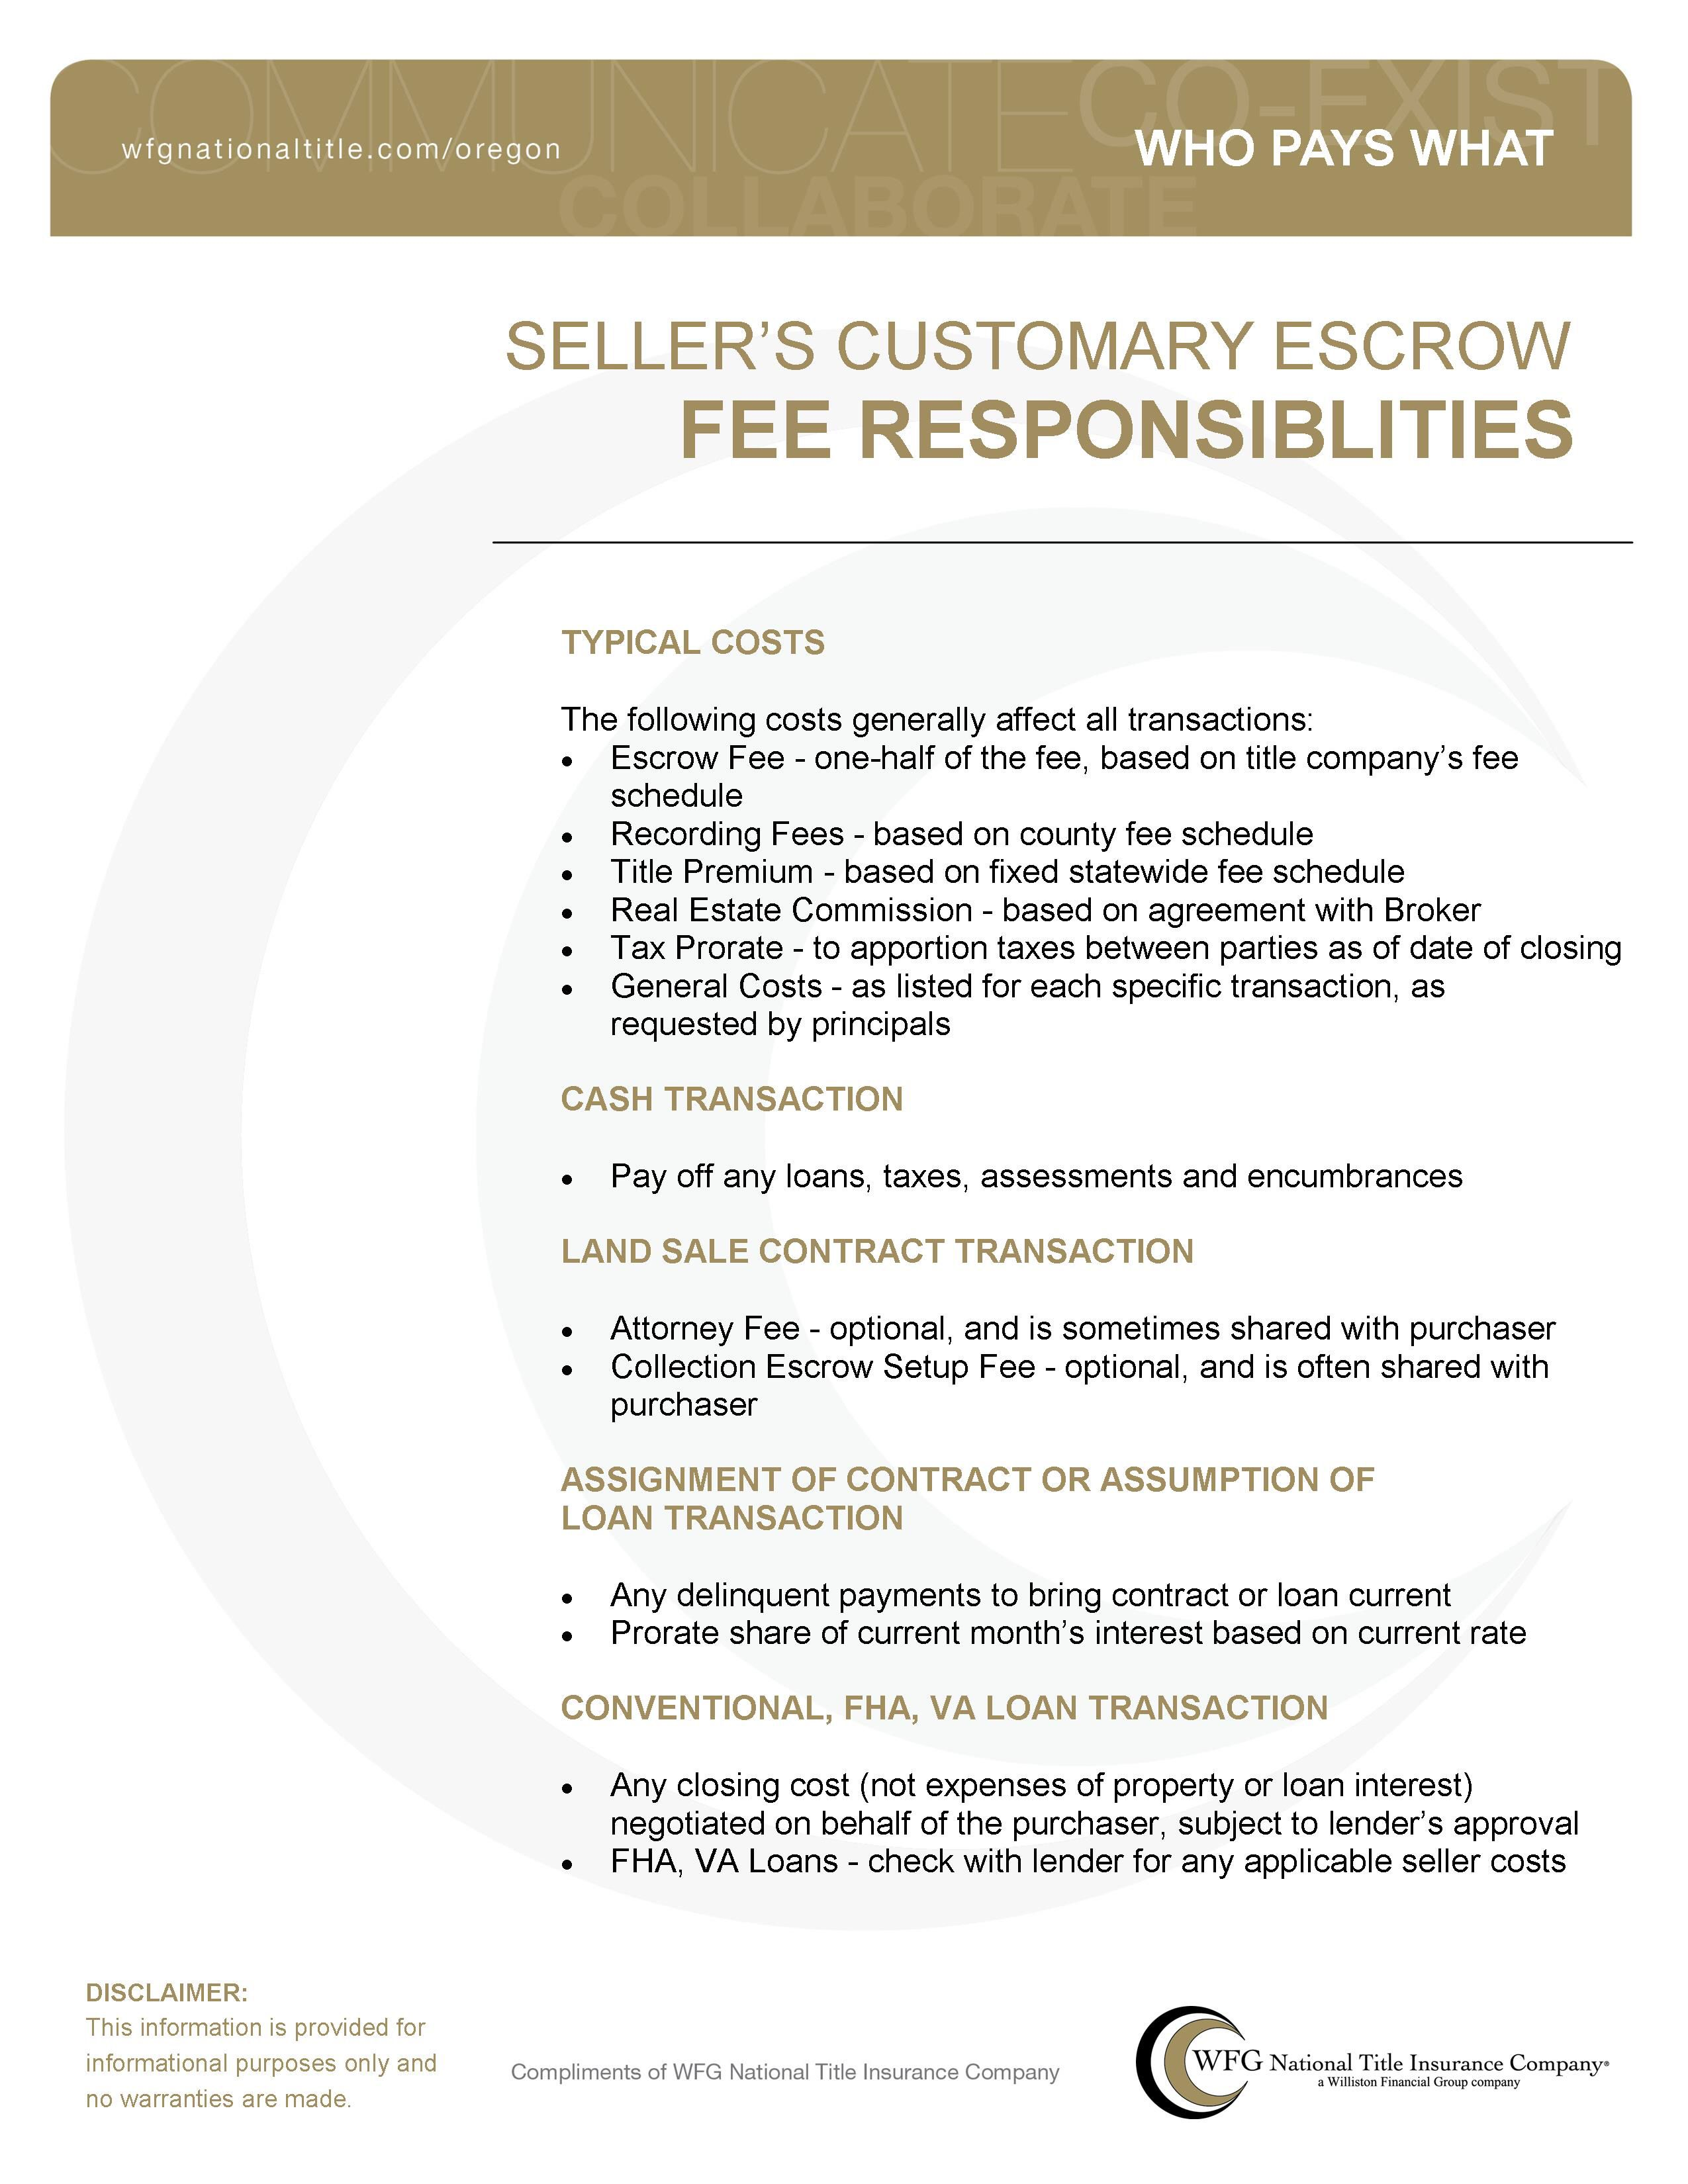 Sellers title